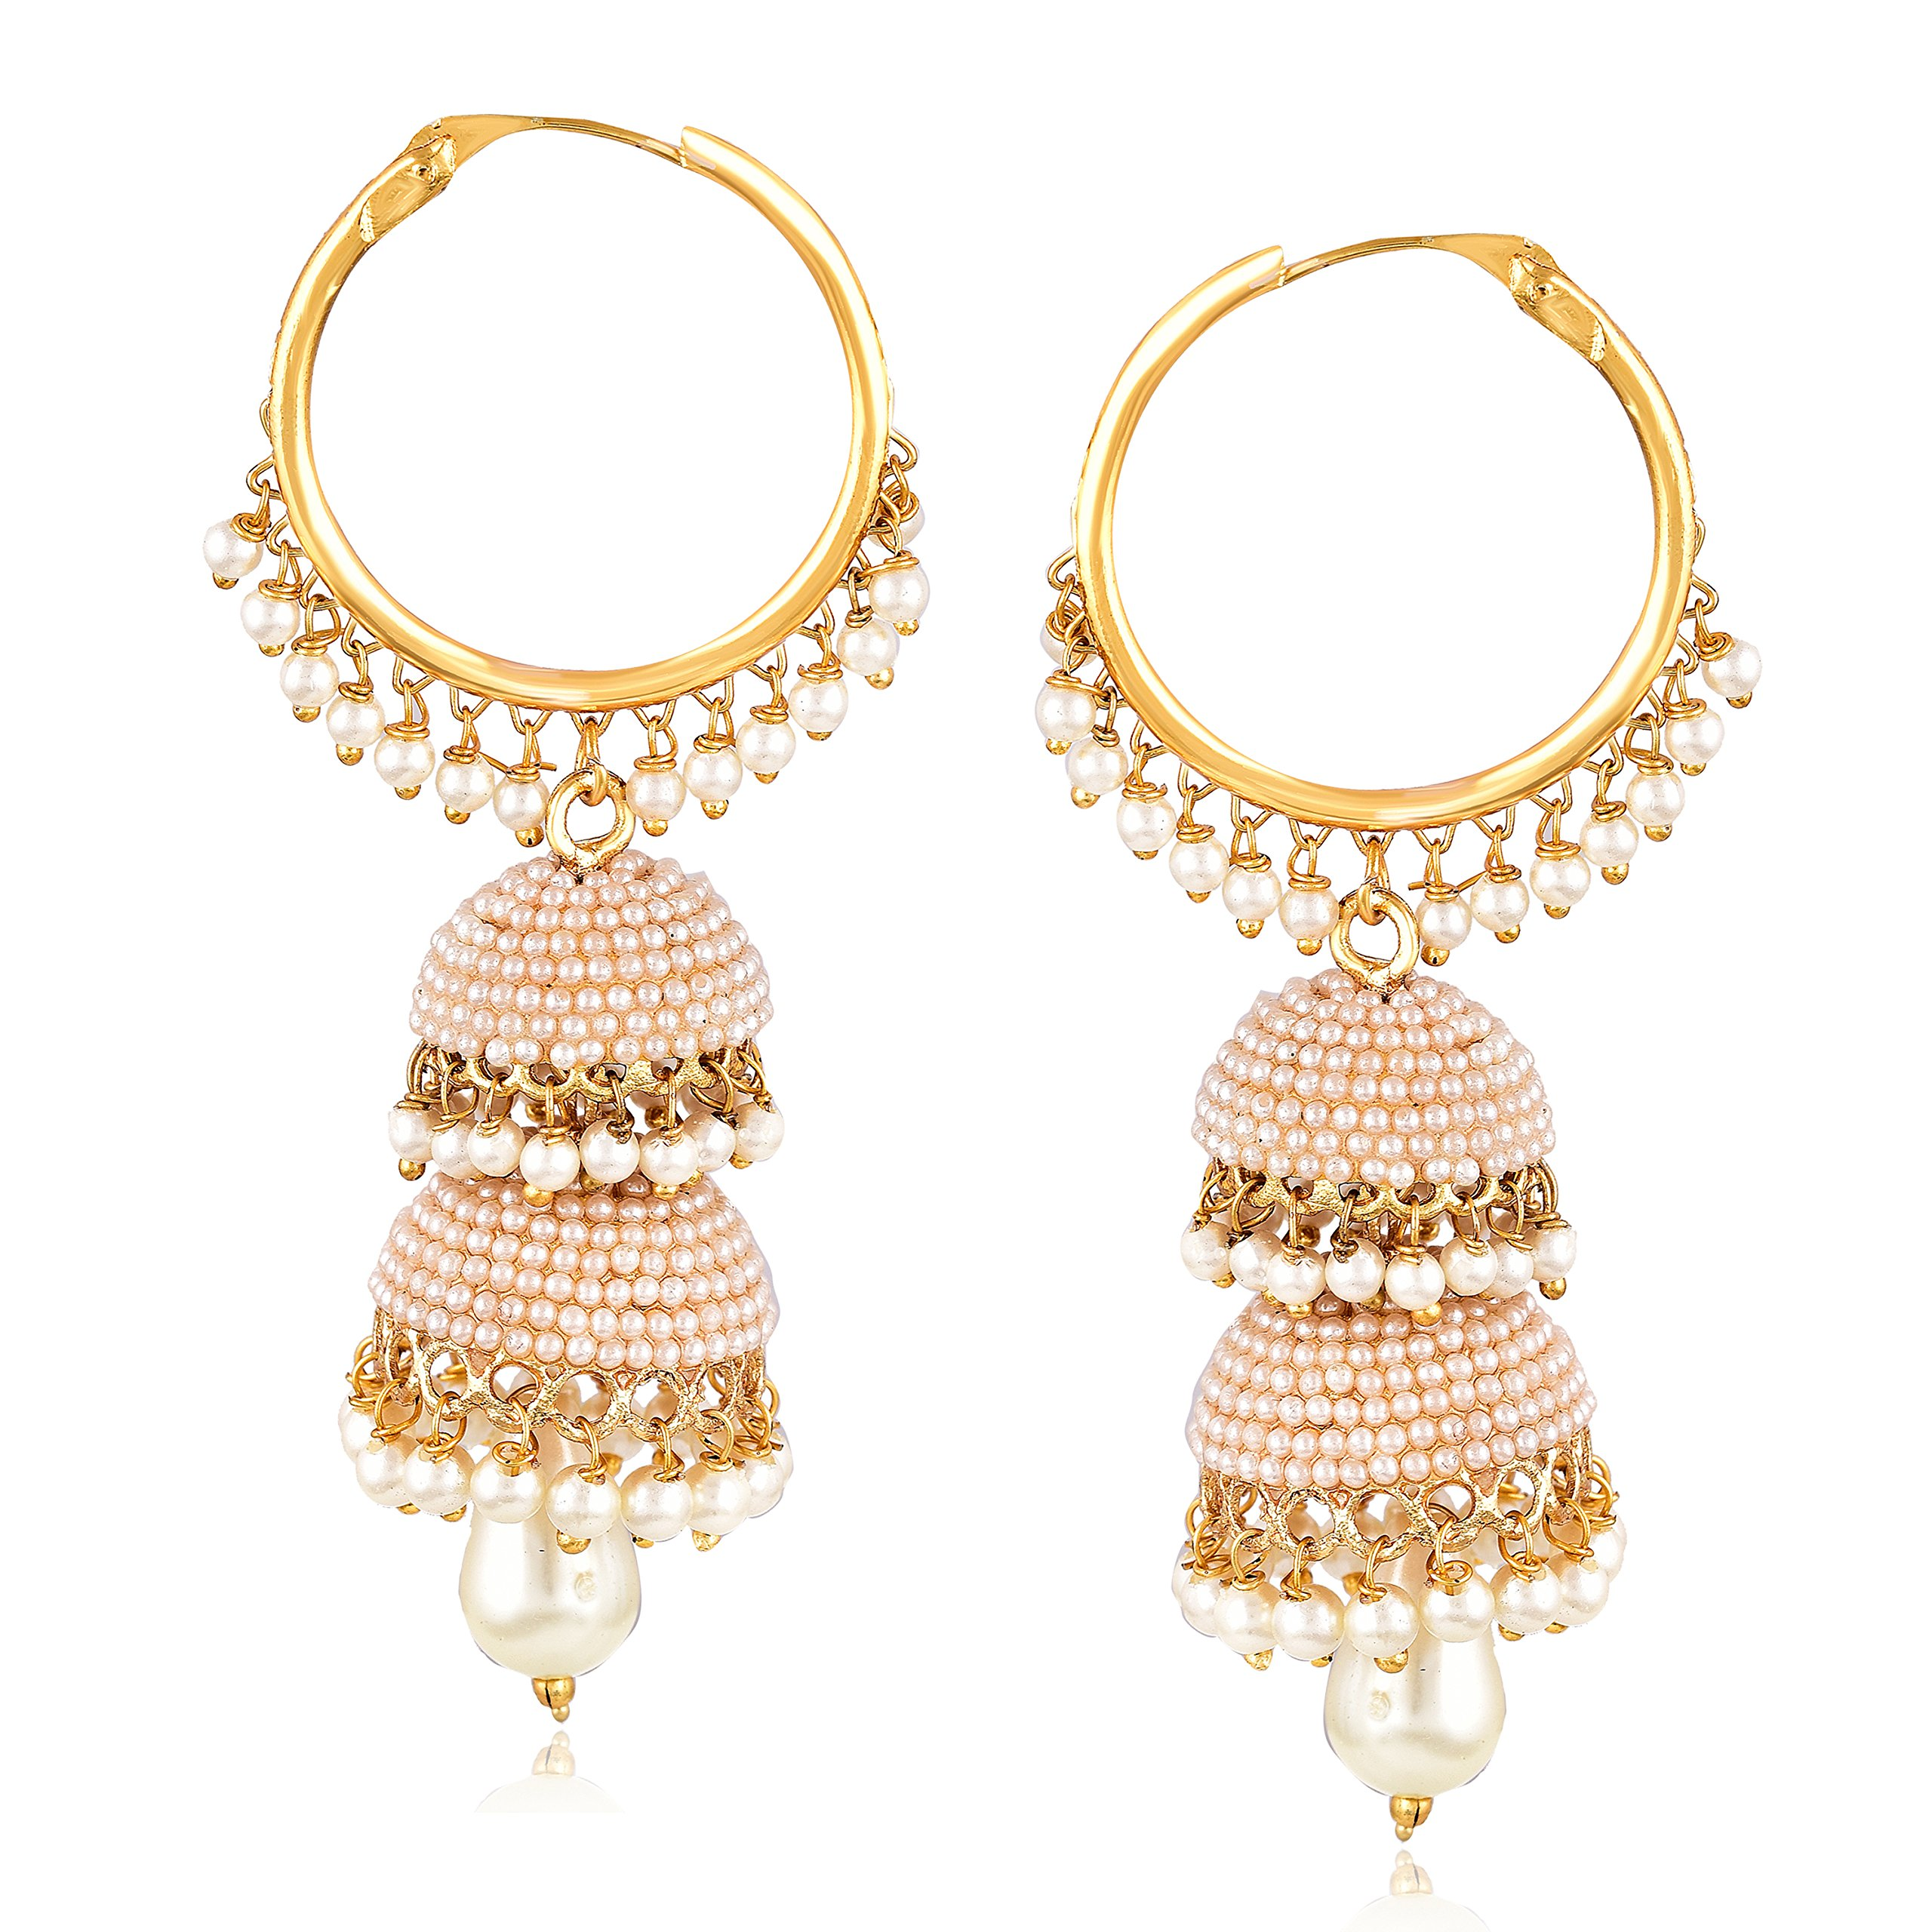 7873276b5a5f66 MEENAZ Fashion Jewellery Traditional Gold Plated Pearl Crystal Jhumki  Jhumka Earrings for Women Designer Jewellery Set